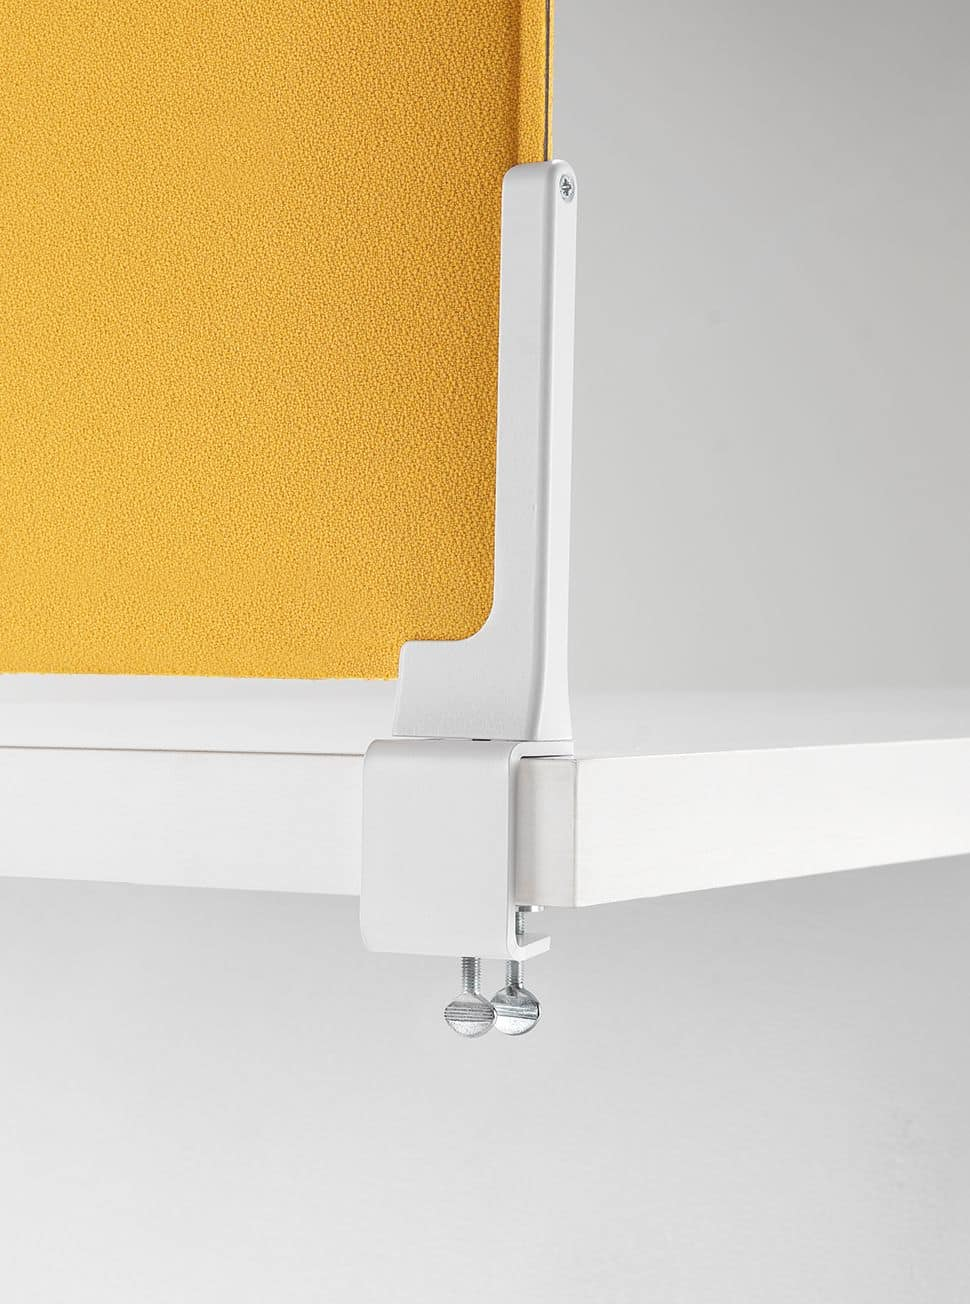 Corner, Sound-absorbing partitions for desks